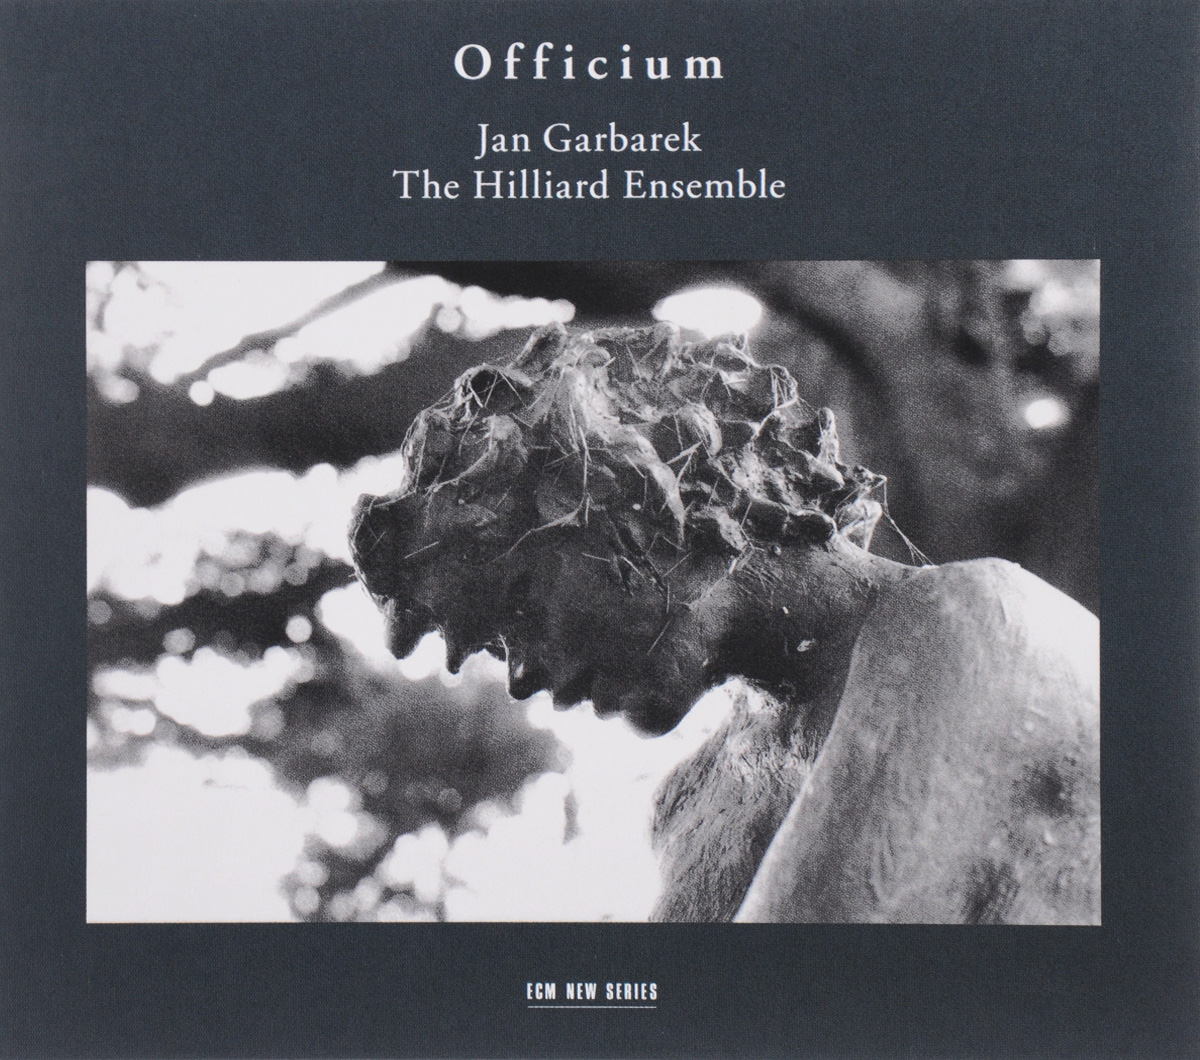 Zakazat.ru Jan Garbarek, The Hilliard Ensemble. Officium